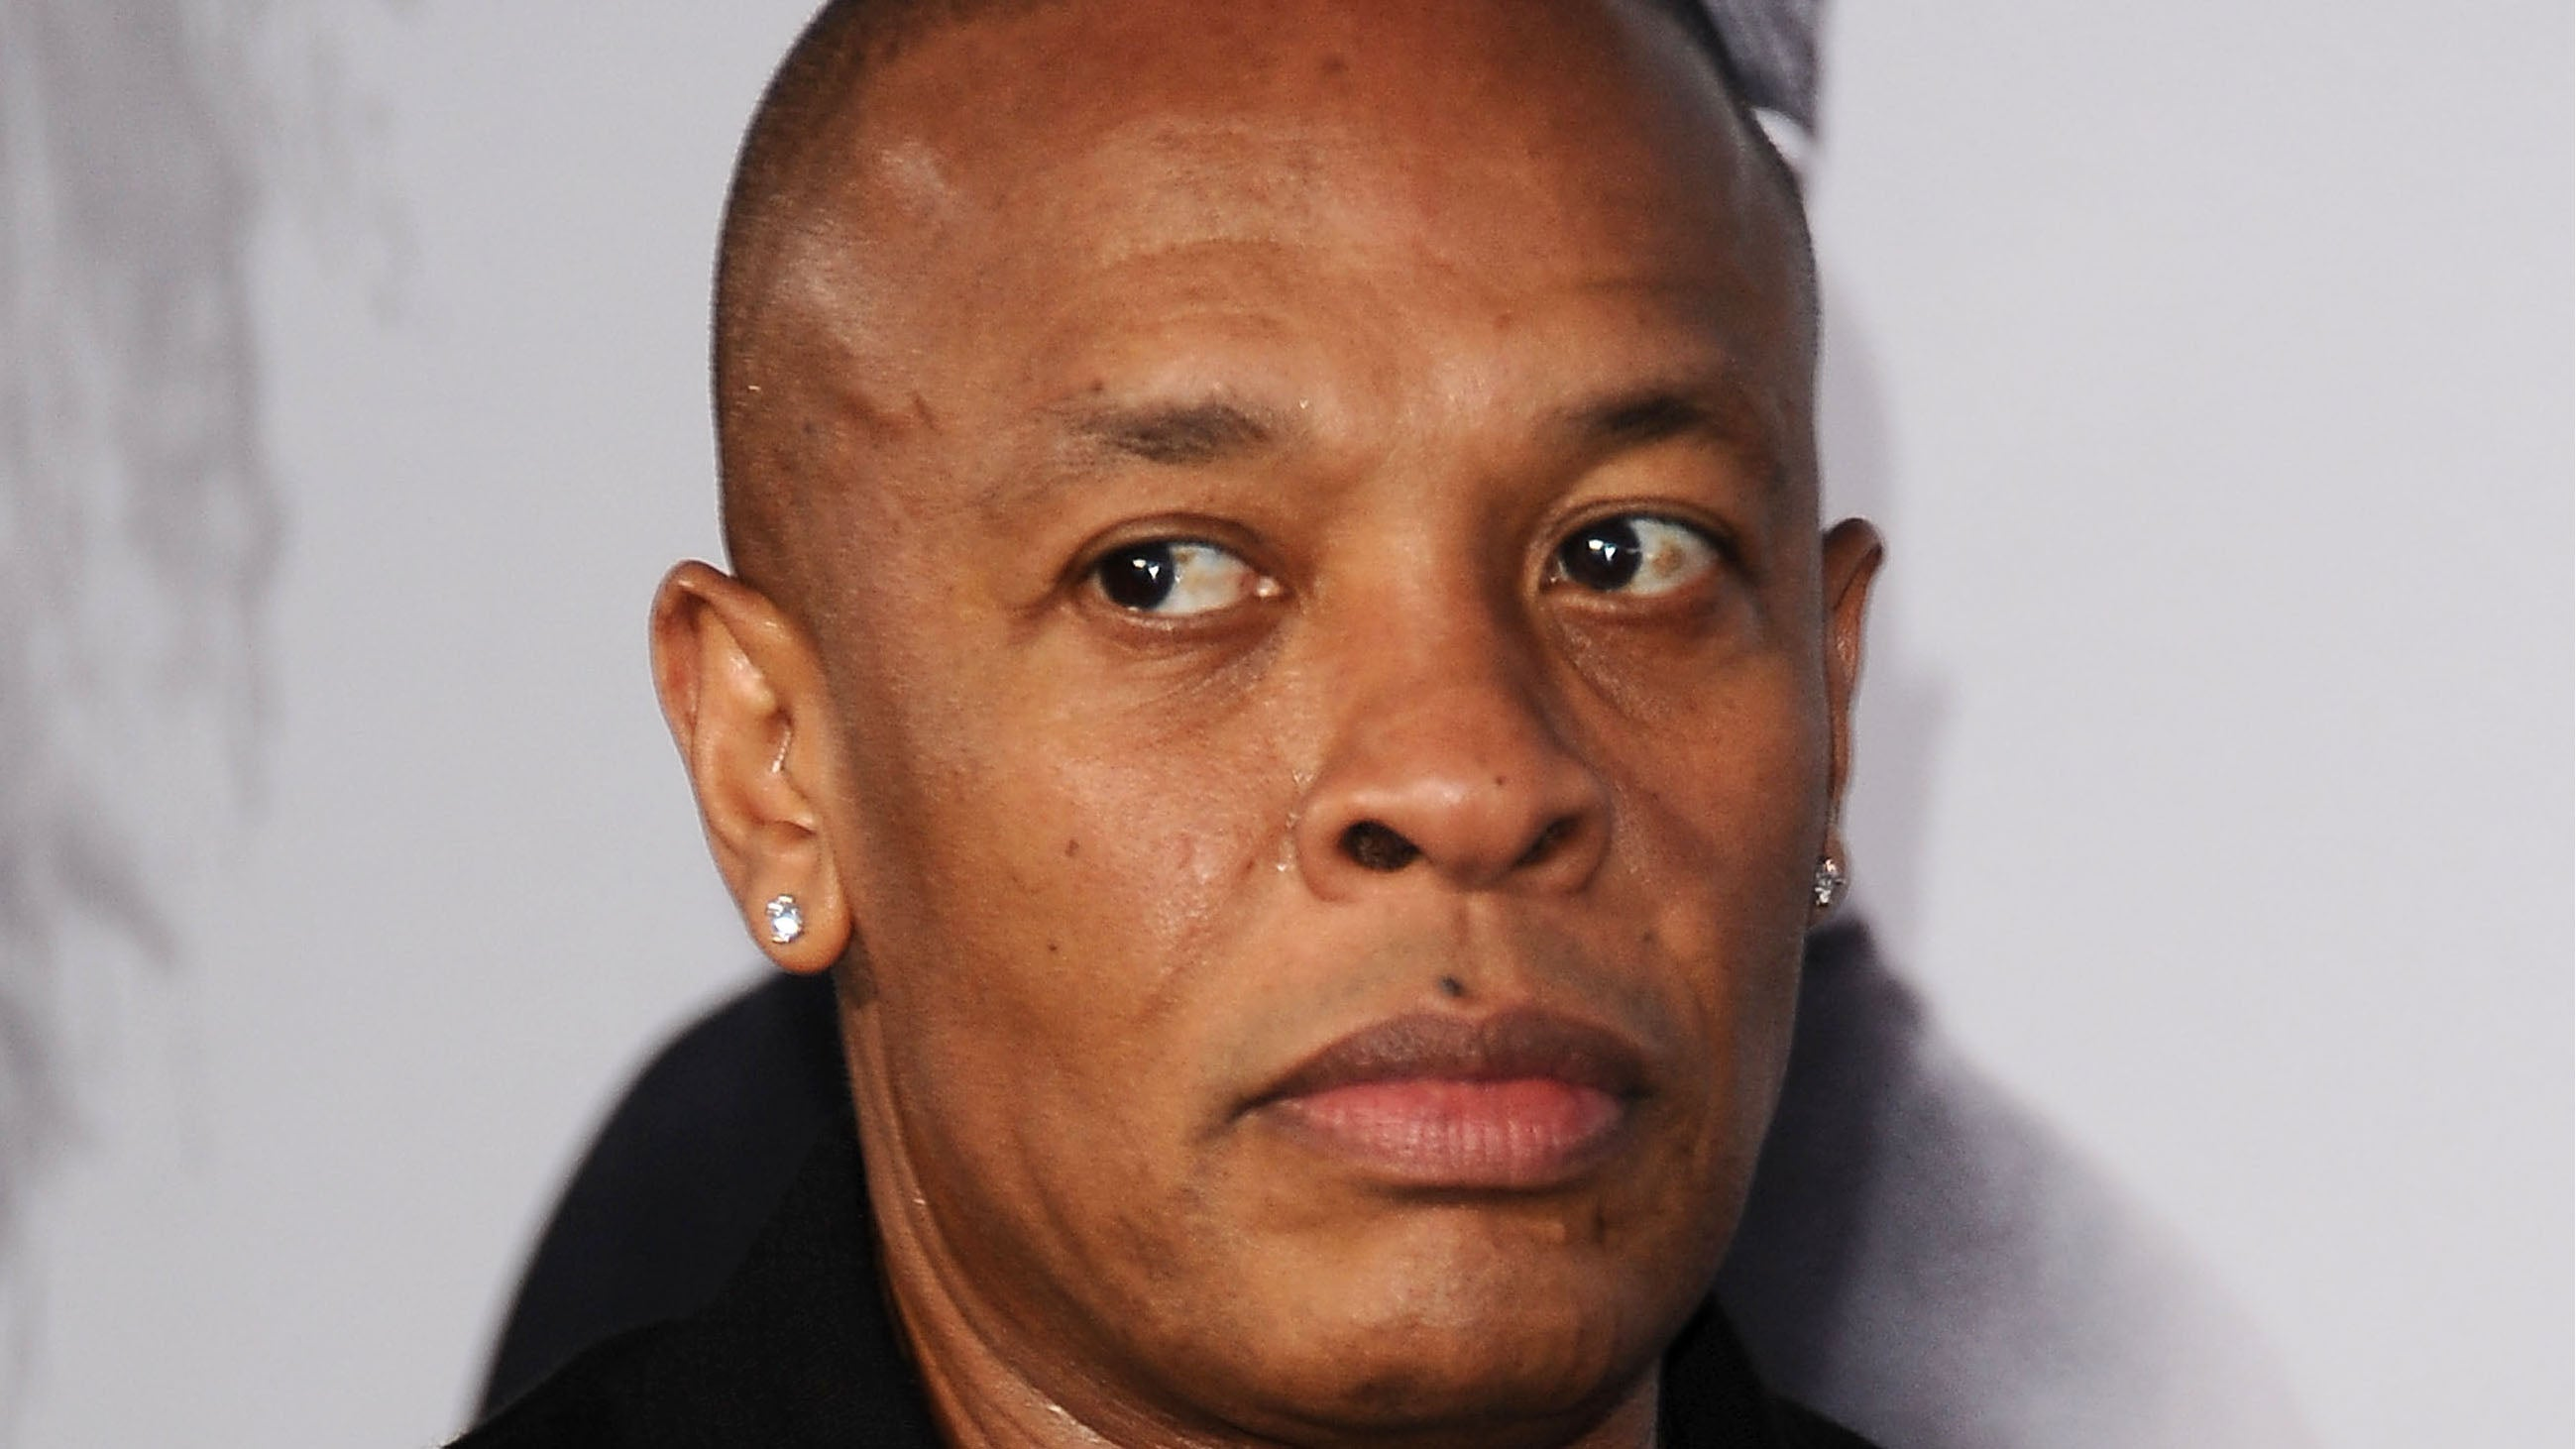 Report: Apple's Making Its First Original TV Series Starring Dr. Dre and 'At Least One Orgy'